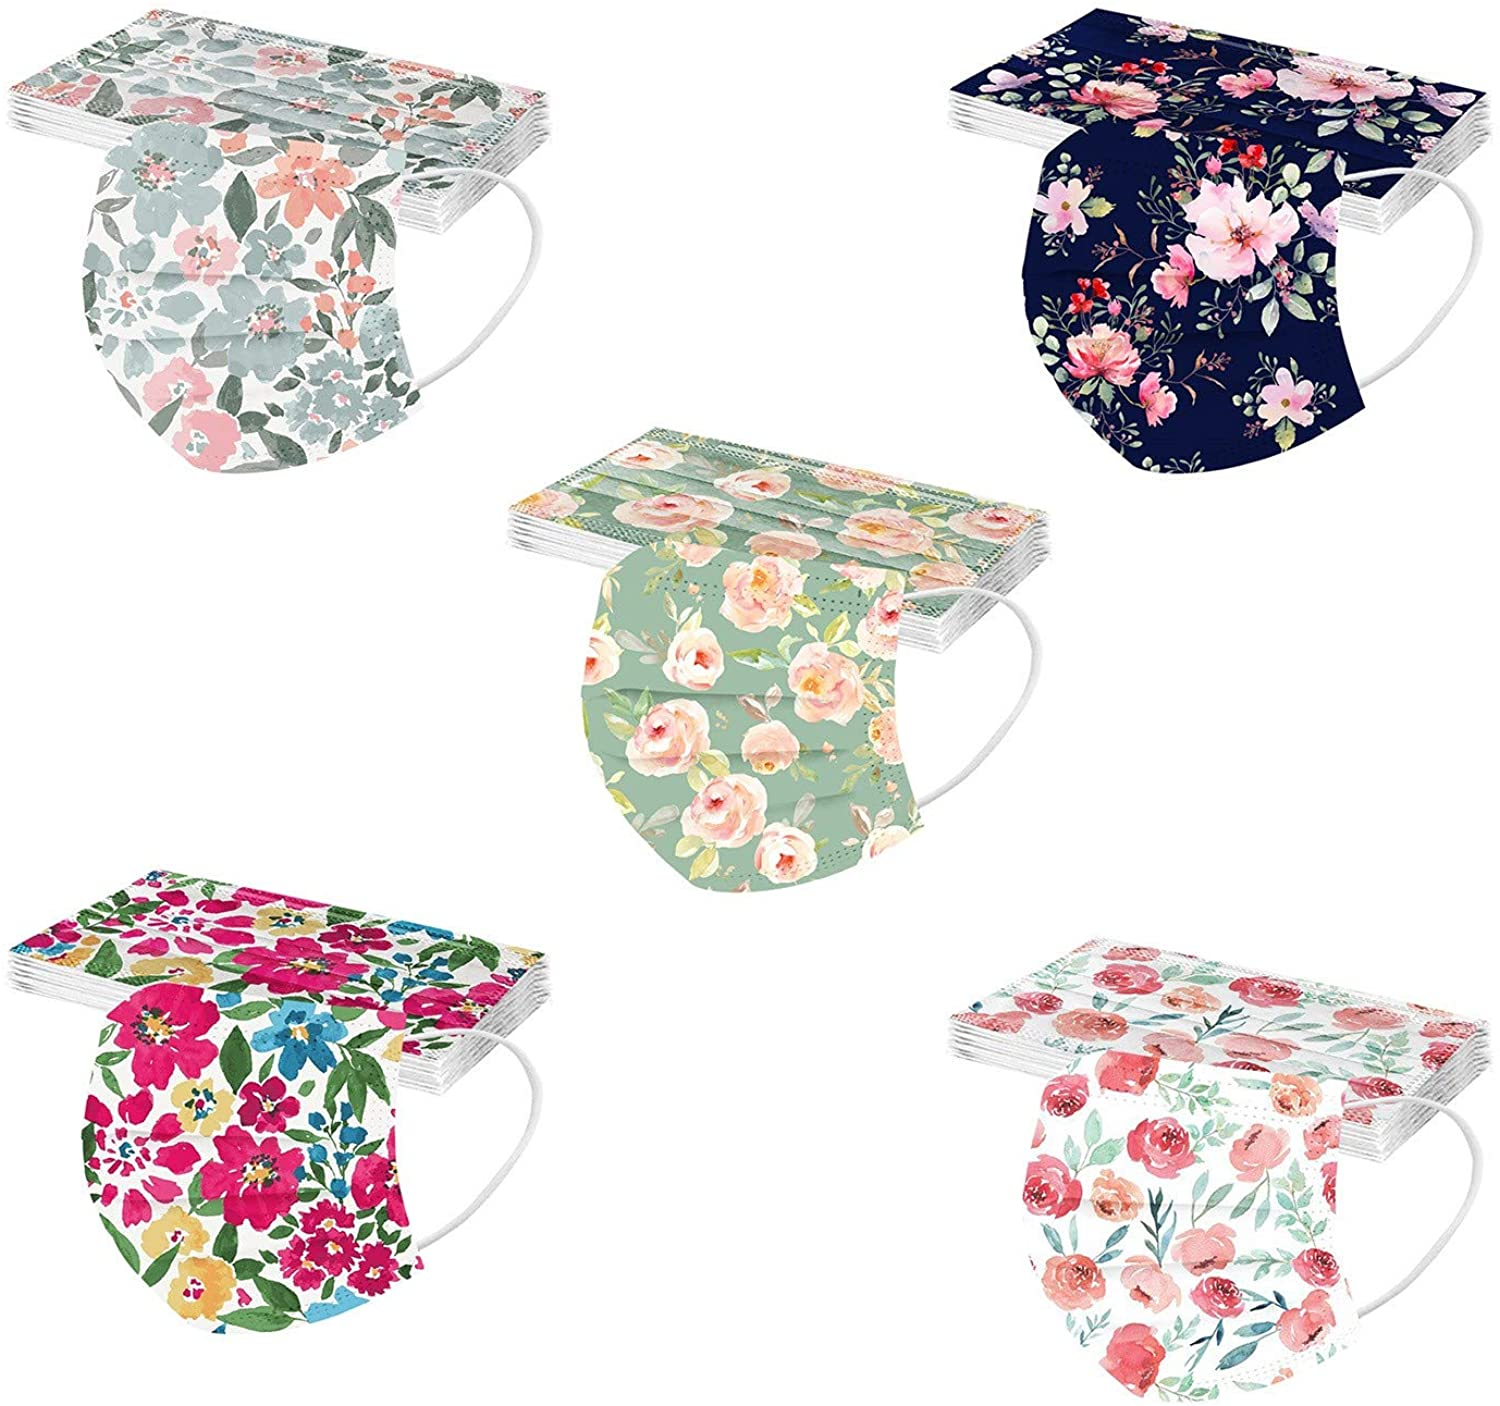 CHENSEN Adults Disposable Face Mask 50Pack 3Ply Floral Cute Protective Breathable Earloop Holiday Masks For Women Men